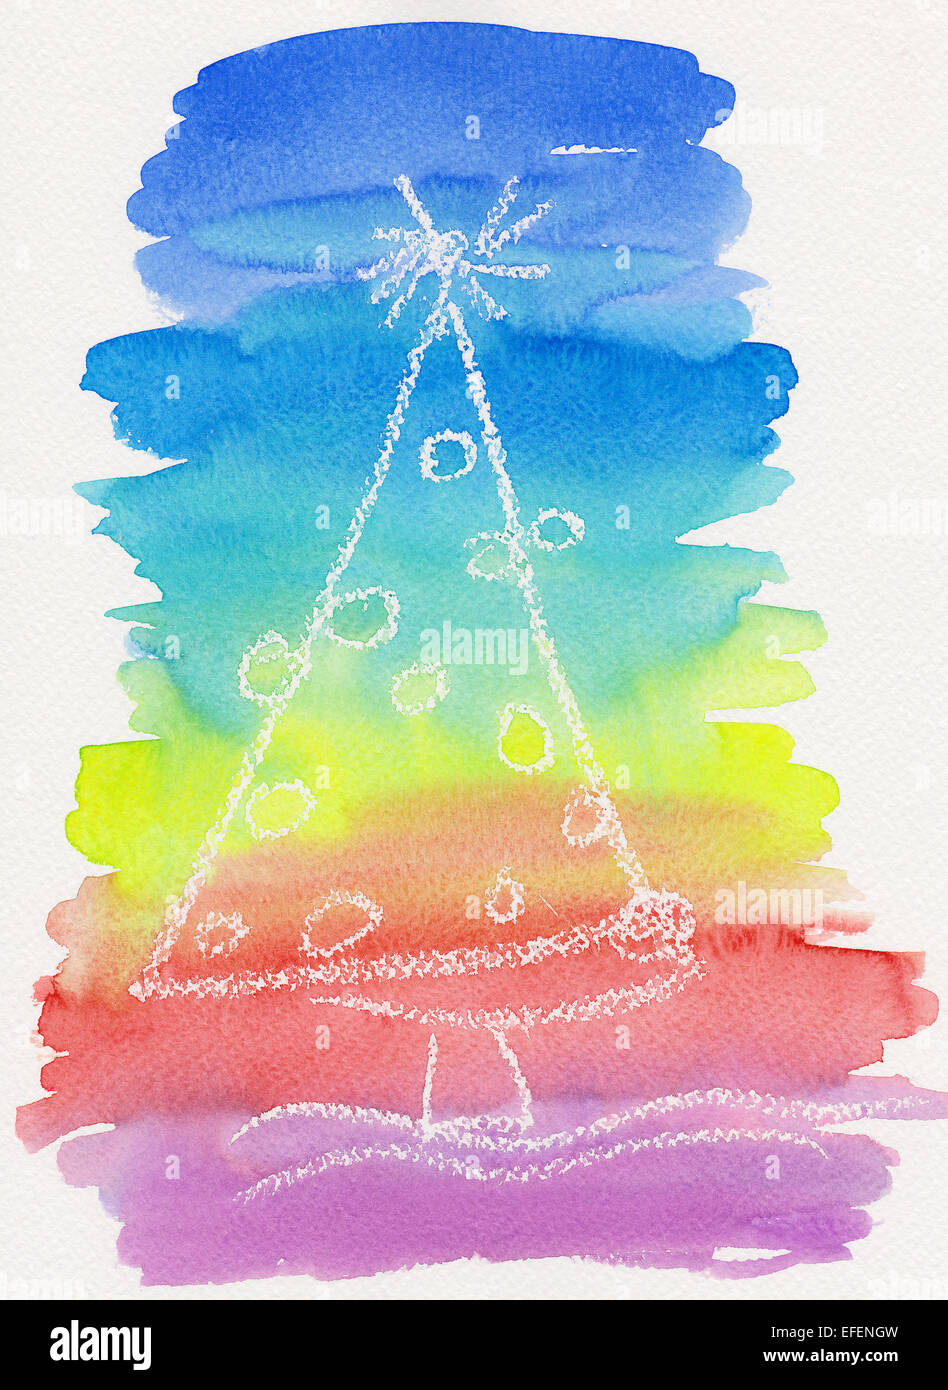 Watercolor painting of a decorated Christmas tree in rainbow colors - Stock Image